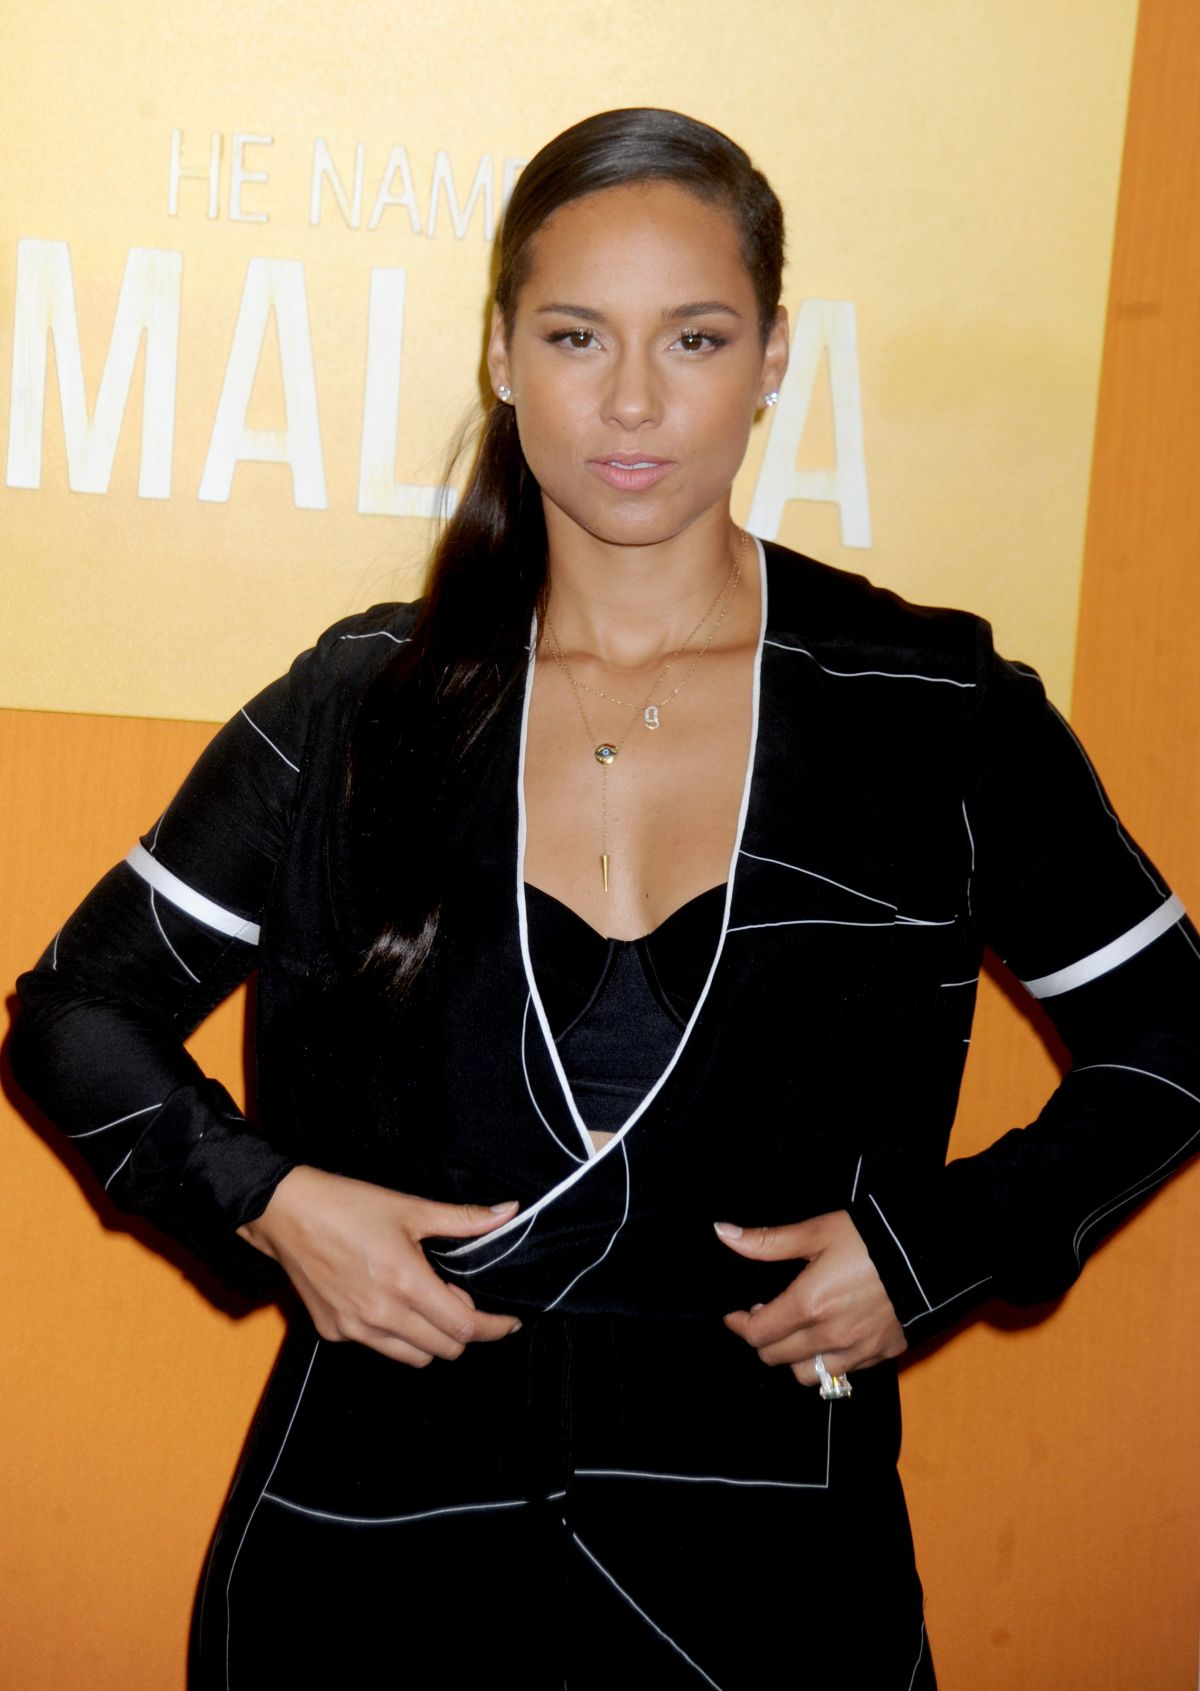 ALICIA KEYS at He Named Me Malala Premiere in New York 09/24/2015